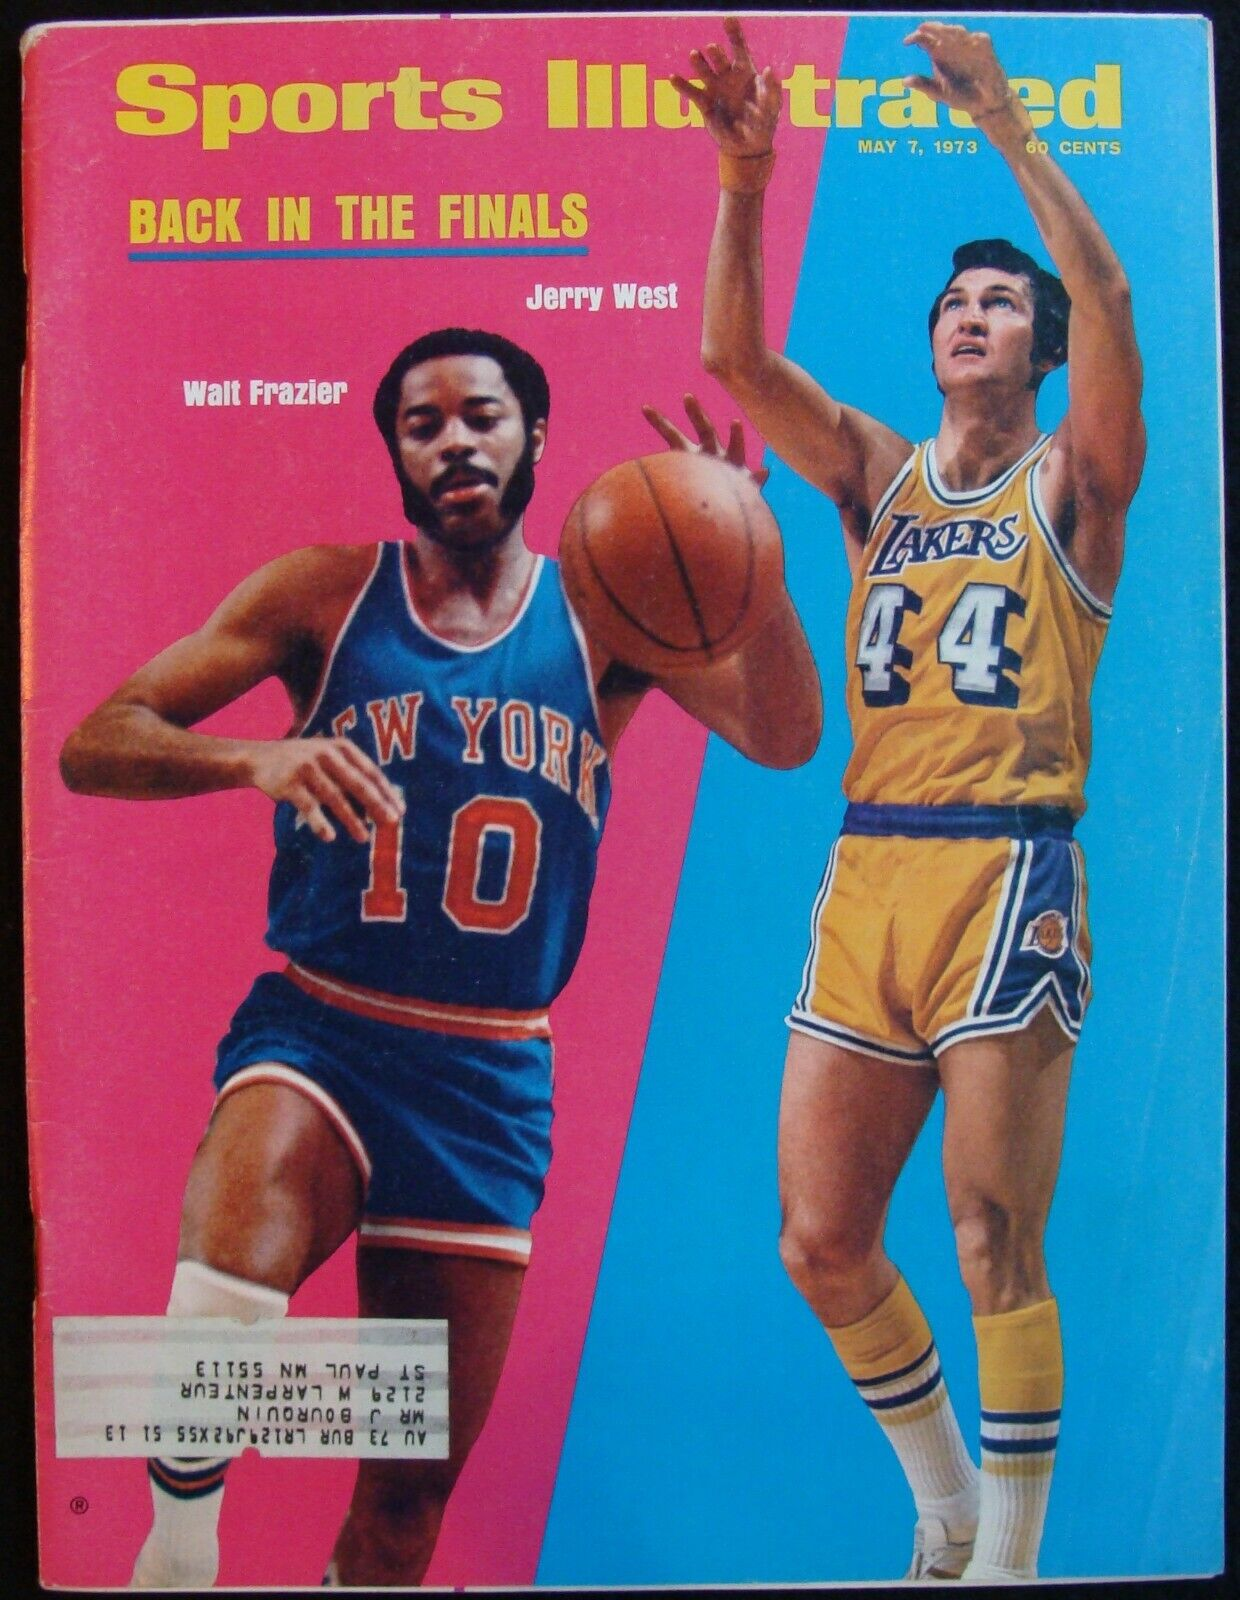 MAY 7, 1973 SPORTS ILLUSTRATED - WALT FRAZIER JERRY WEST NBA FINALS - $7.50